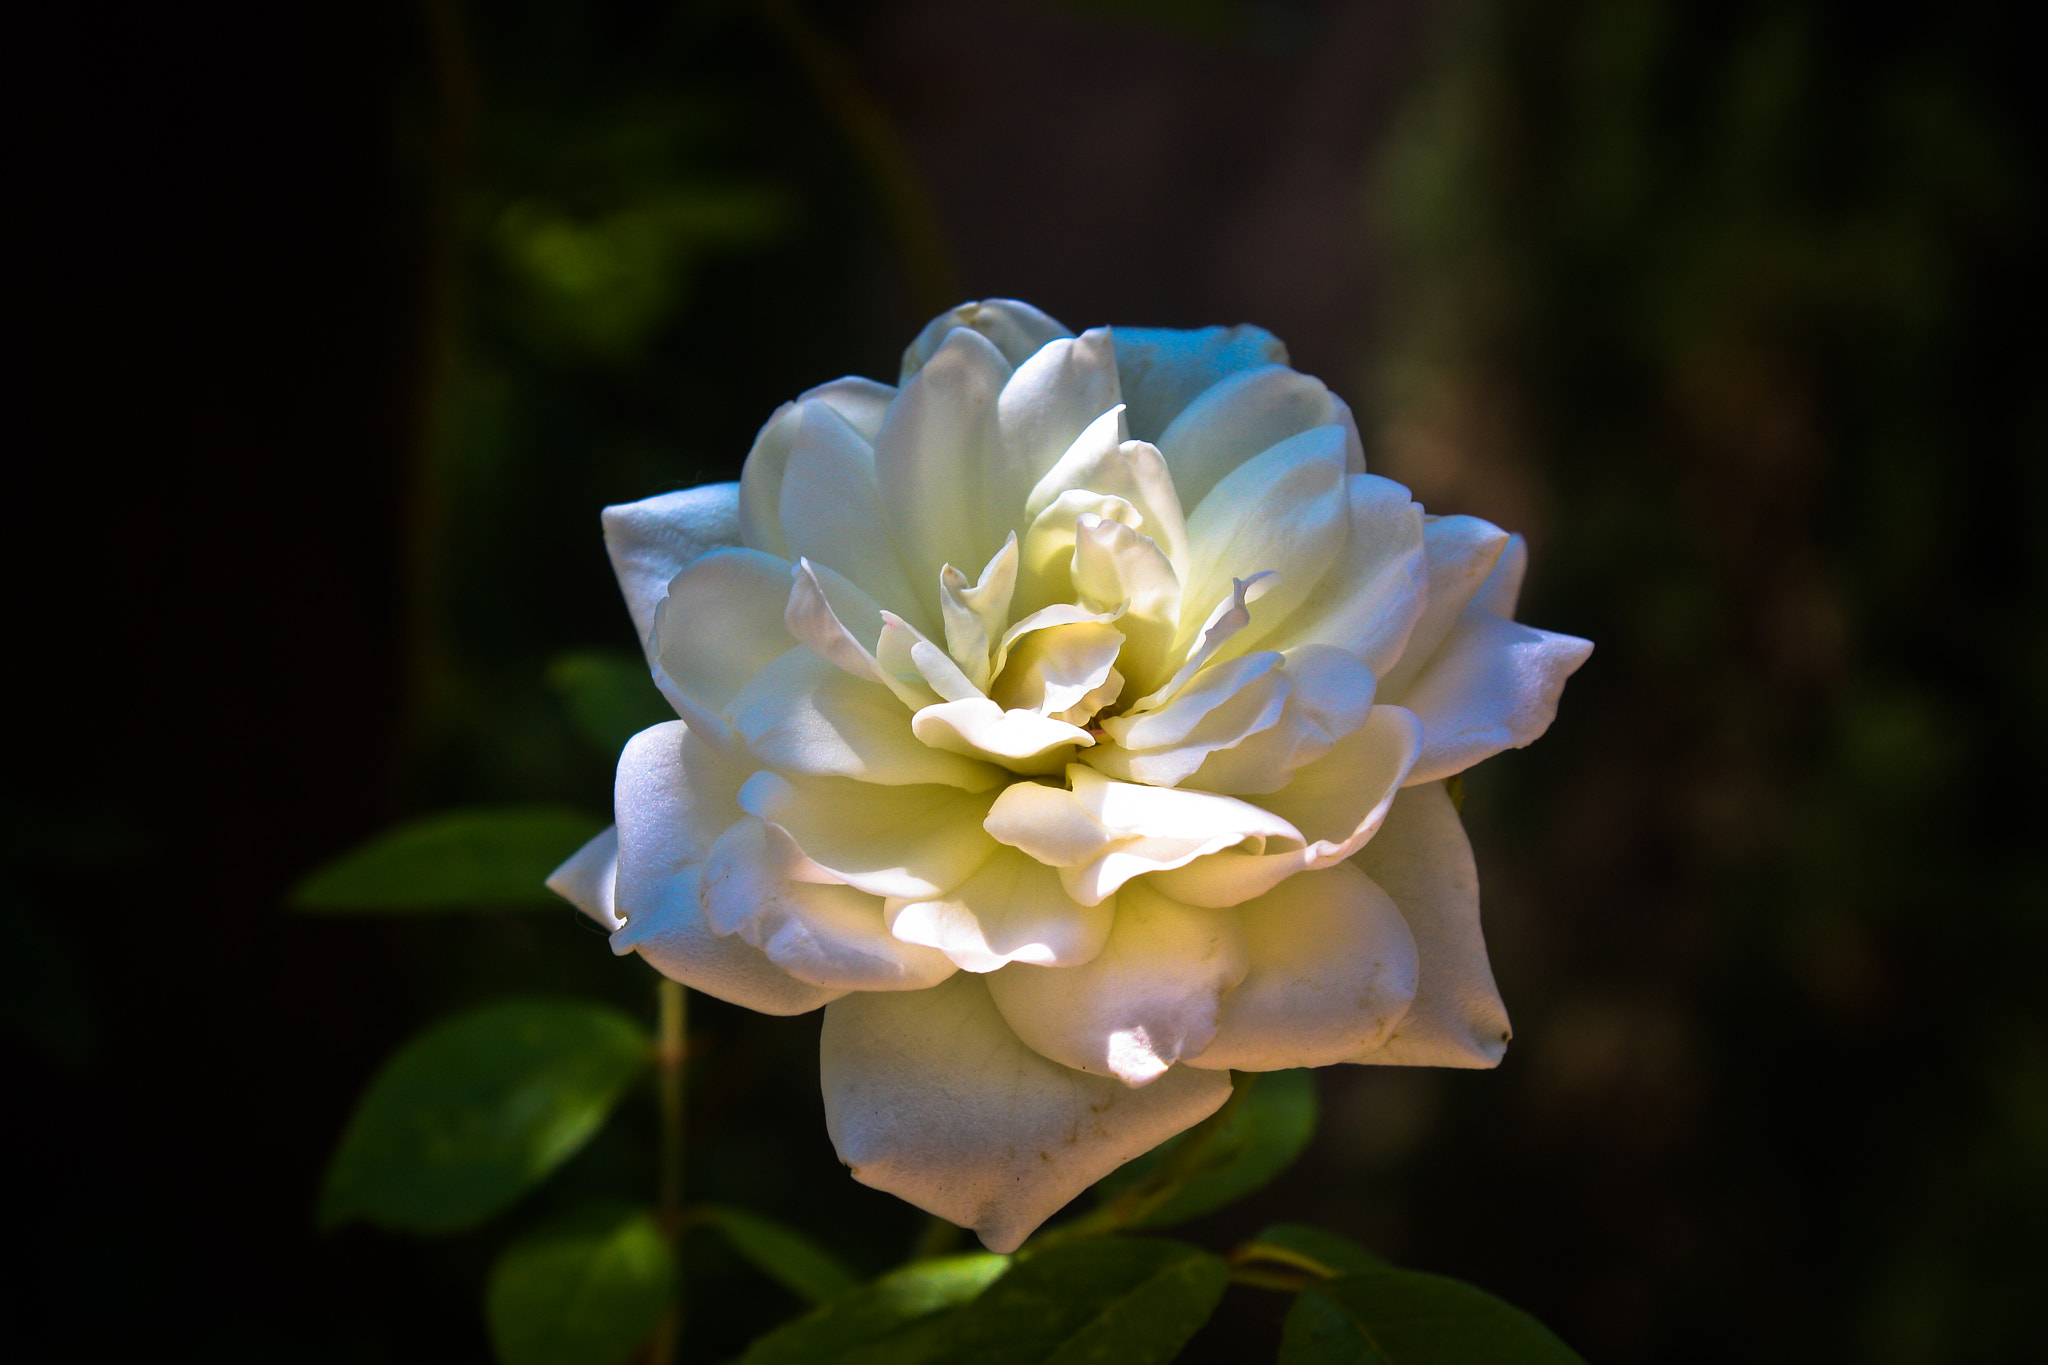 Photograph White Rose in light by Kirk Wallace on 500px